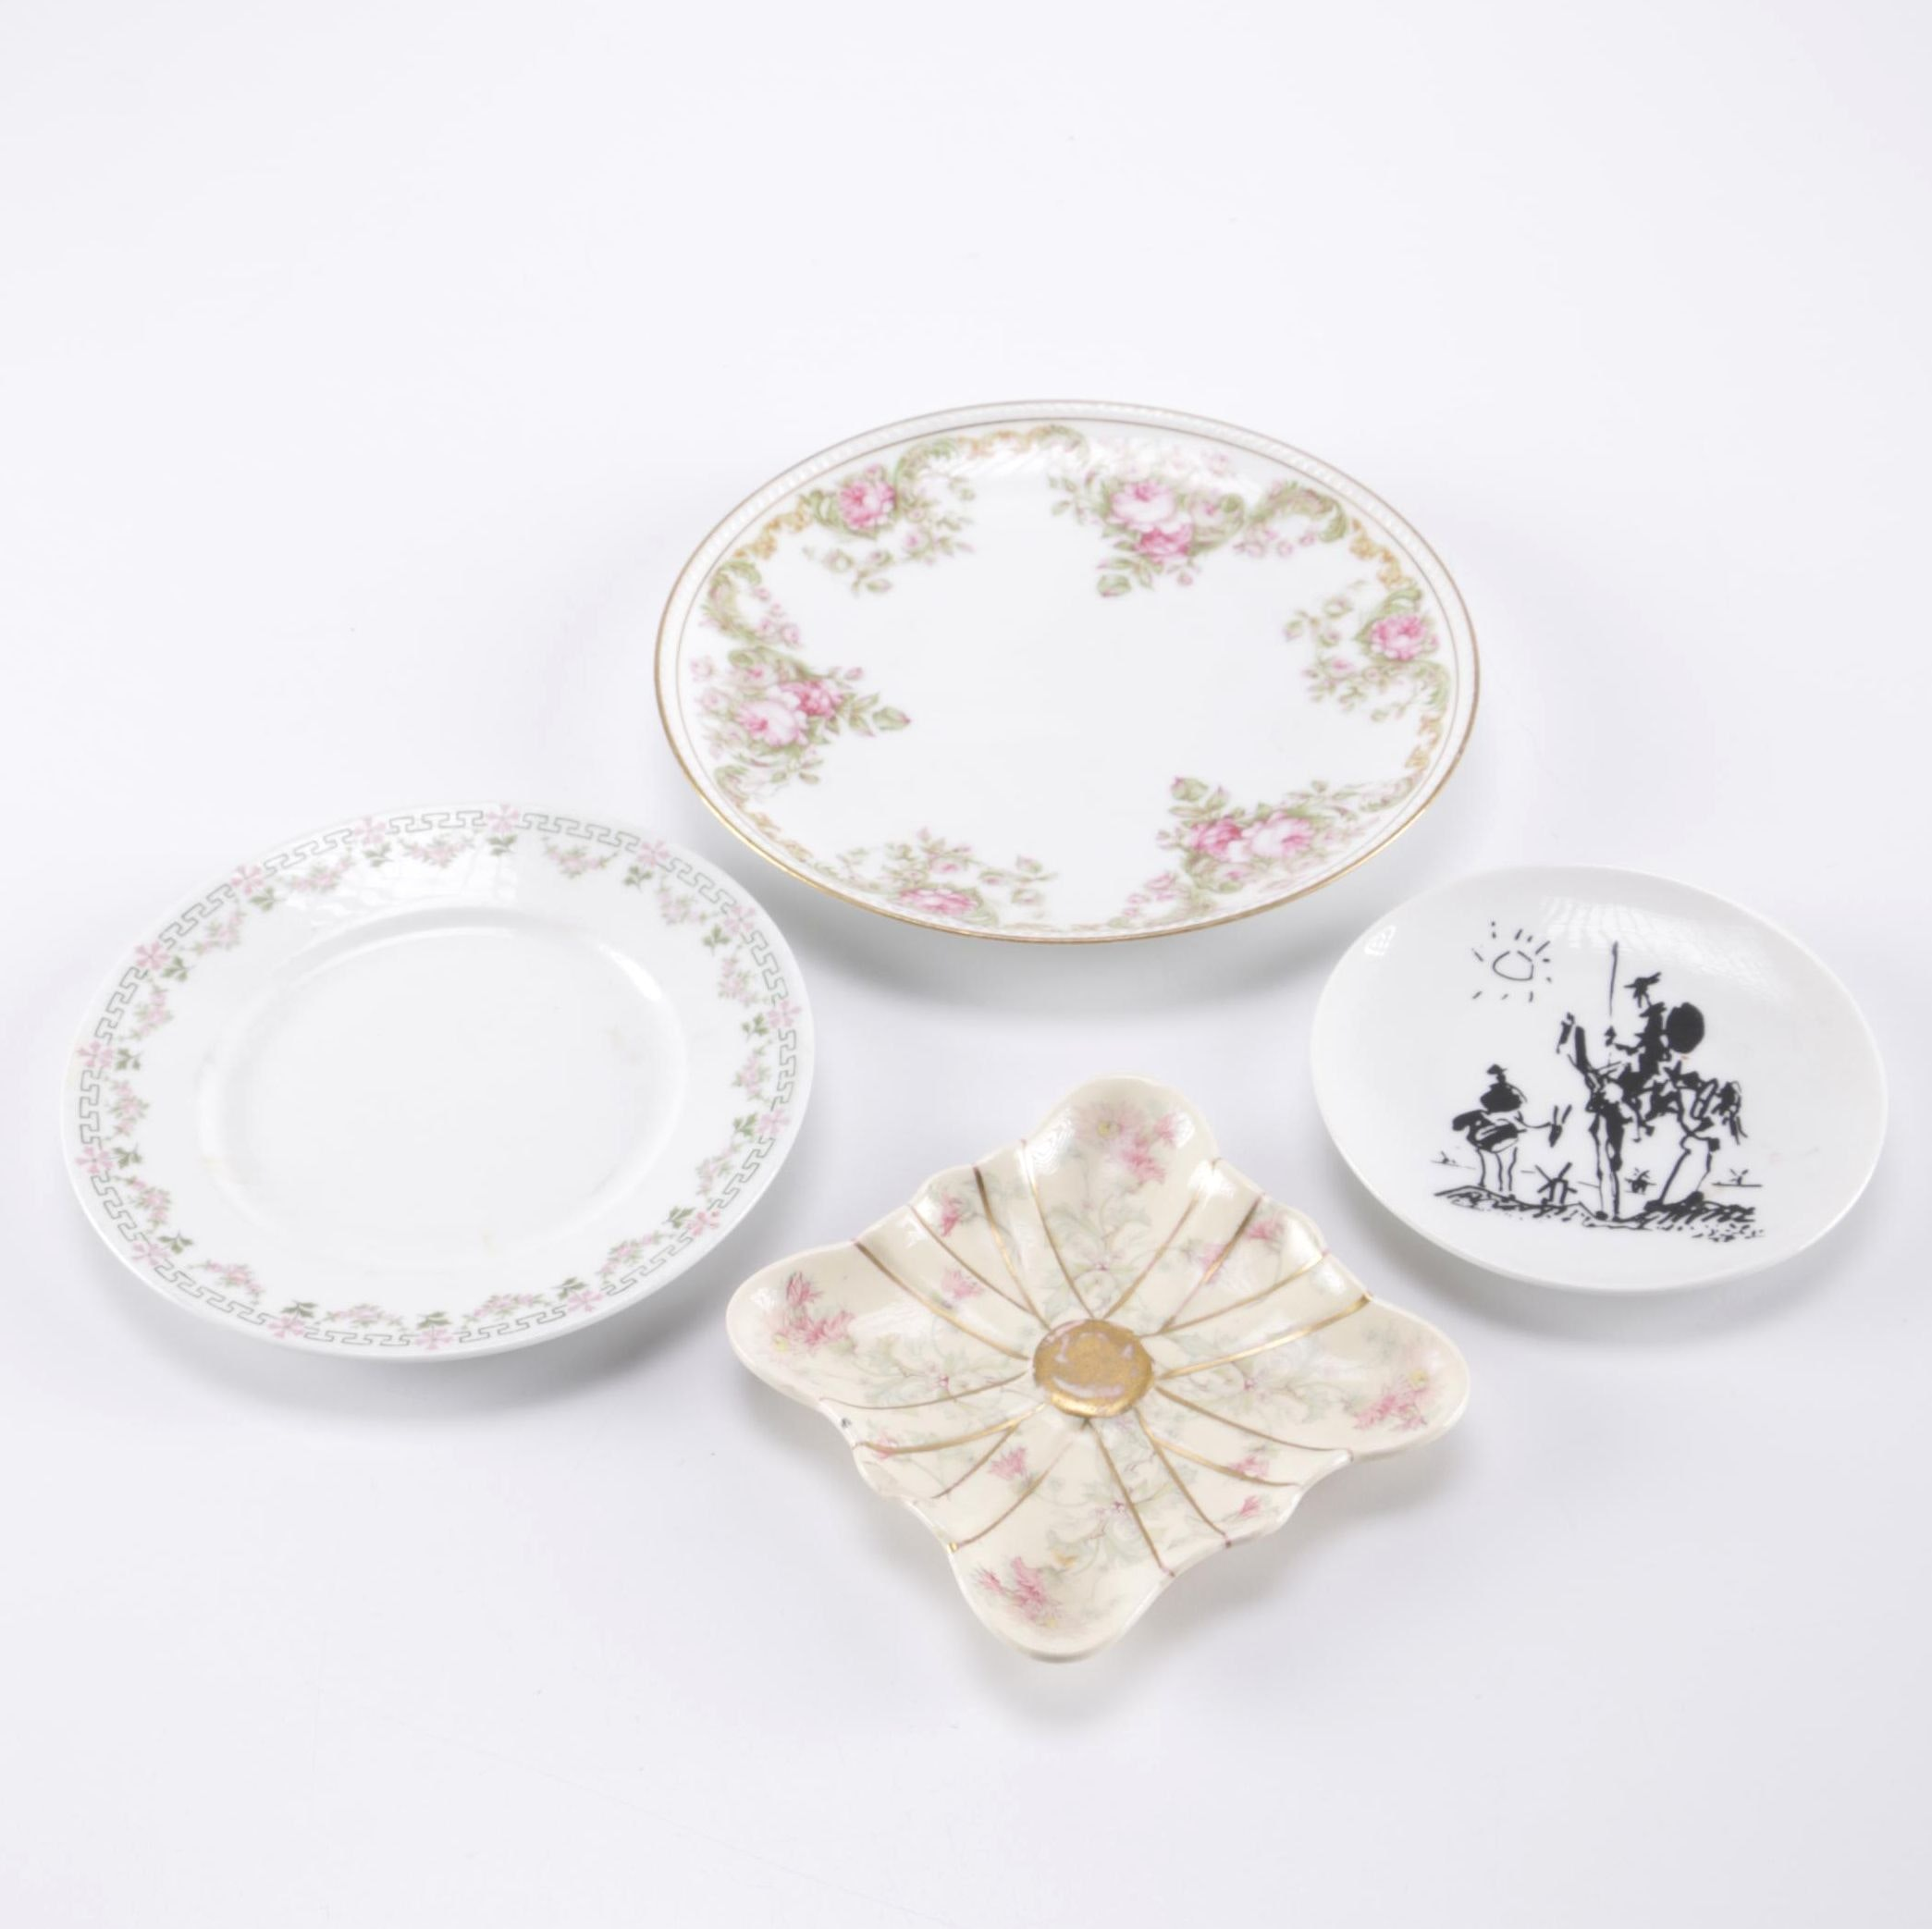 Selection of Porcelain Plates Featuring Haviland